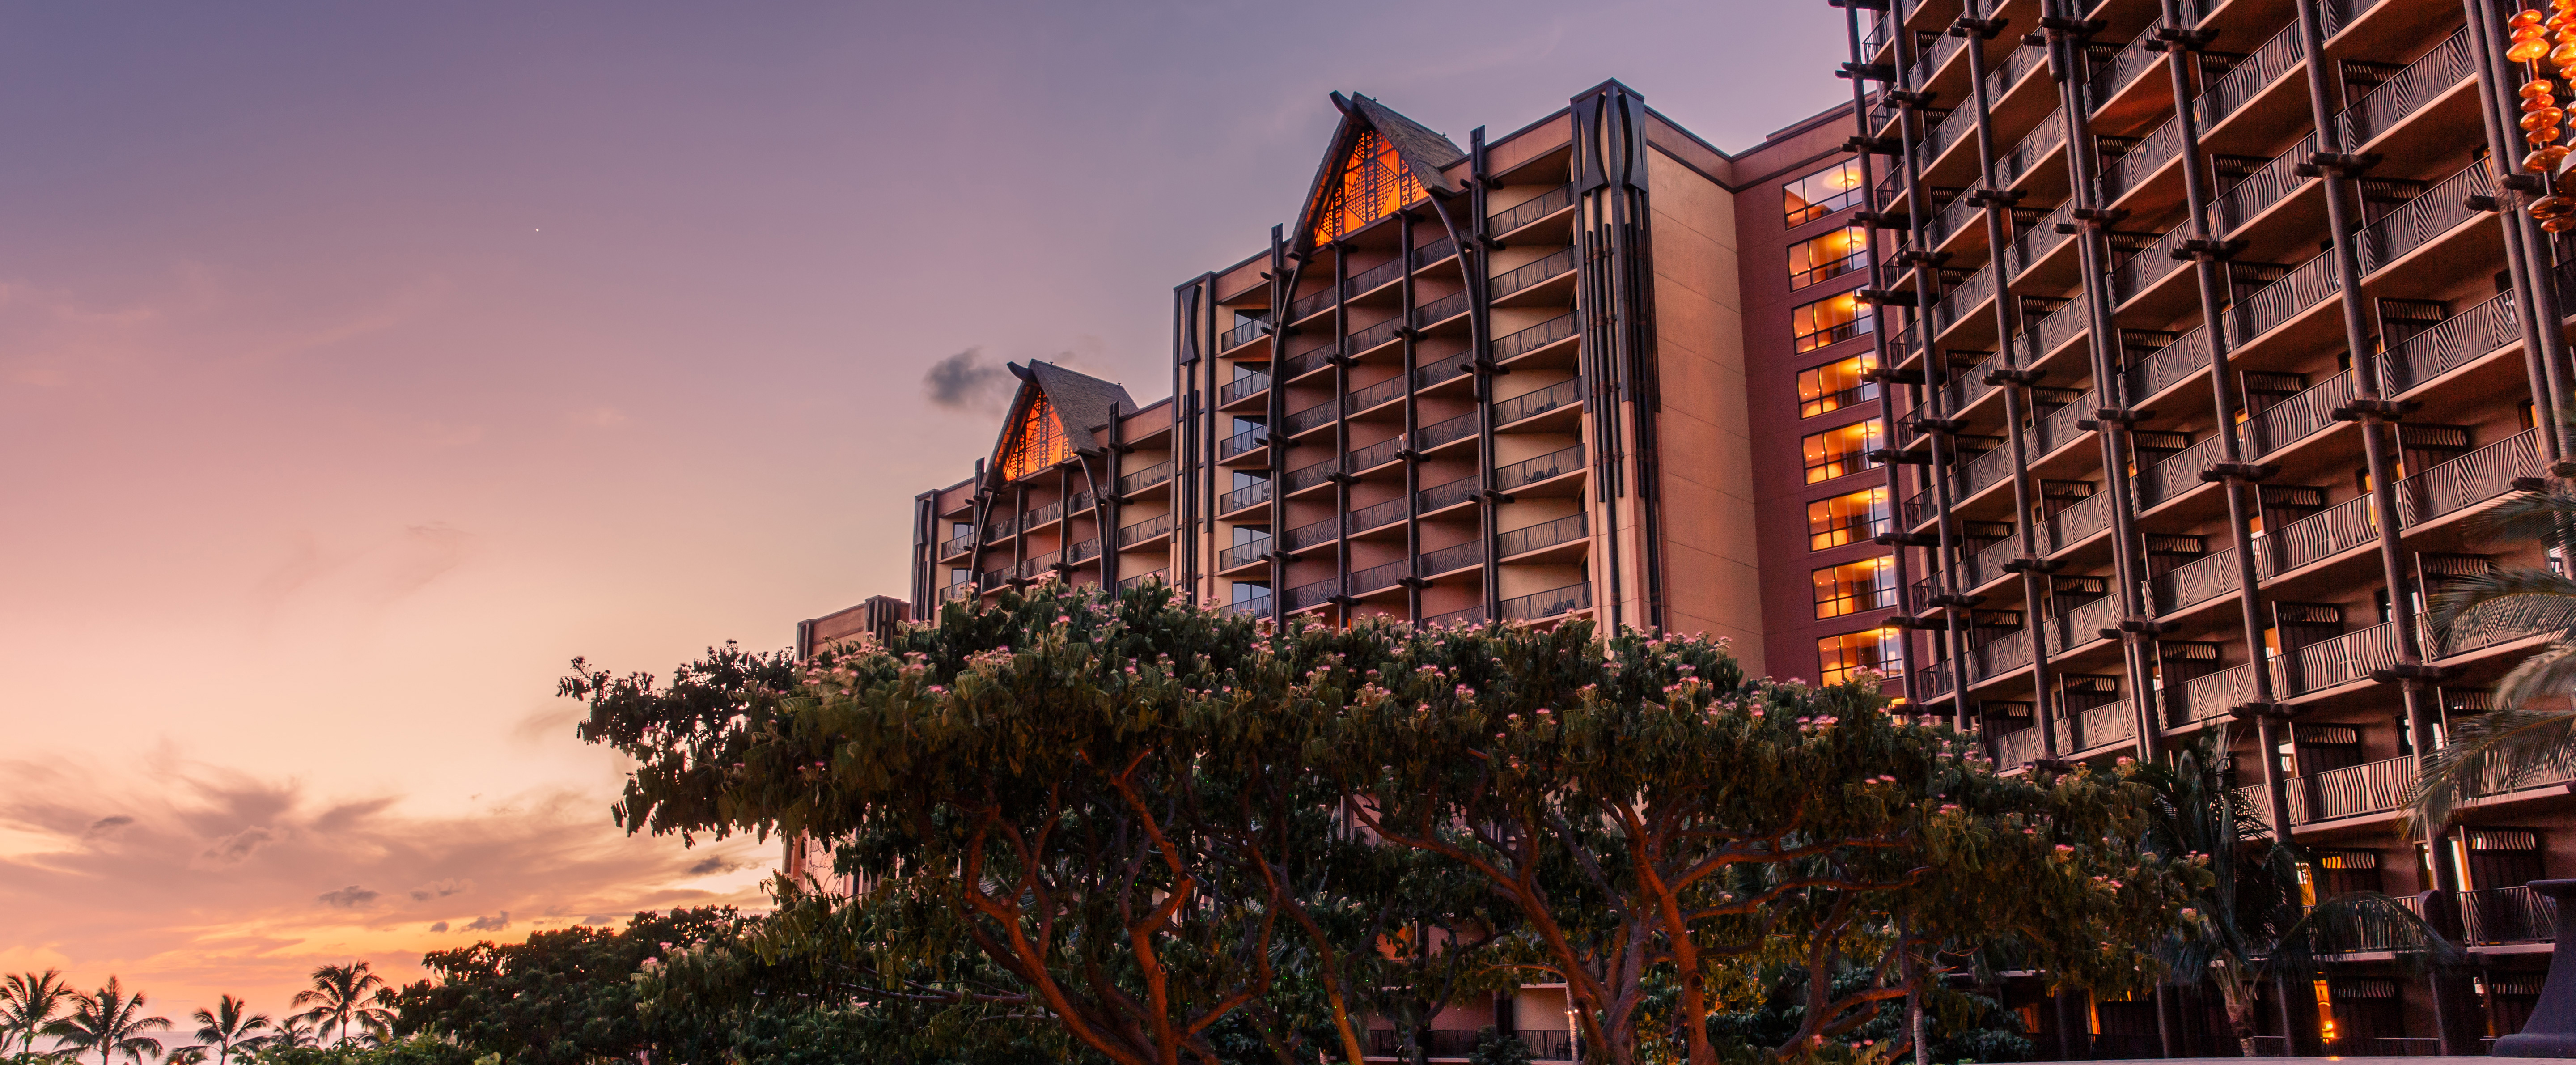 The Resort exterior at sunset